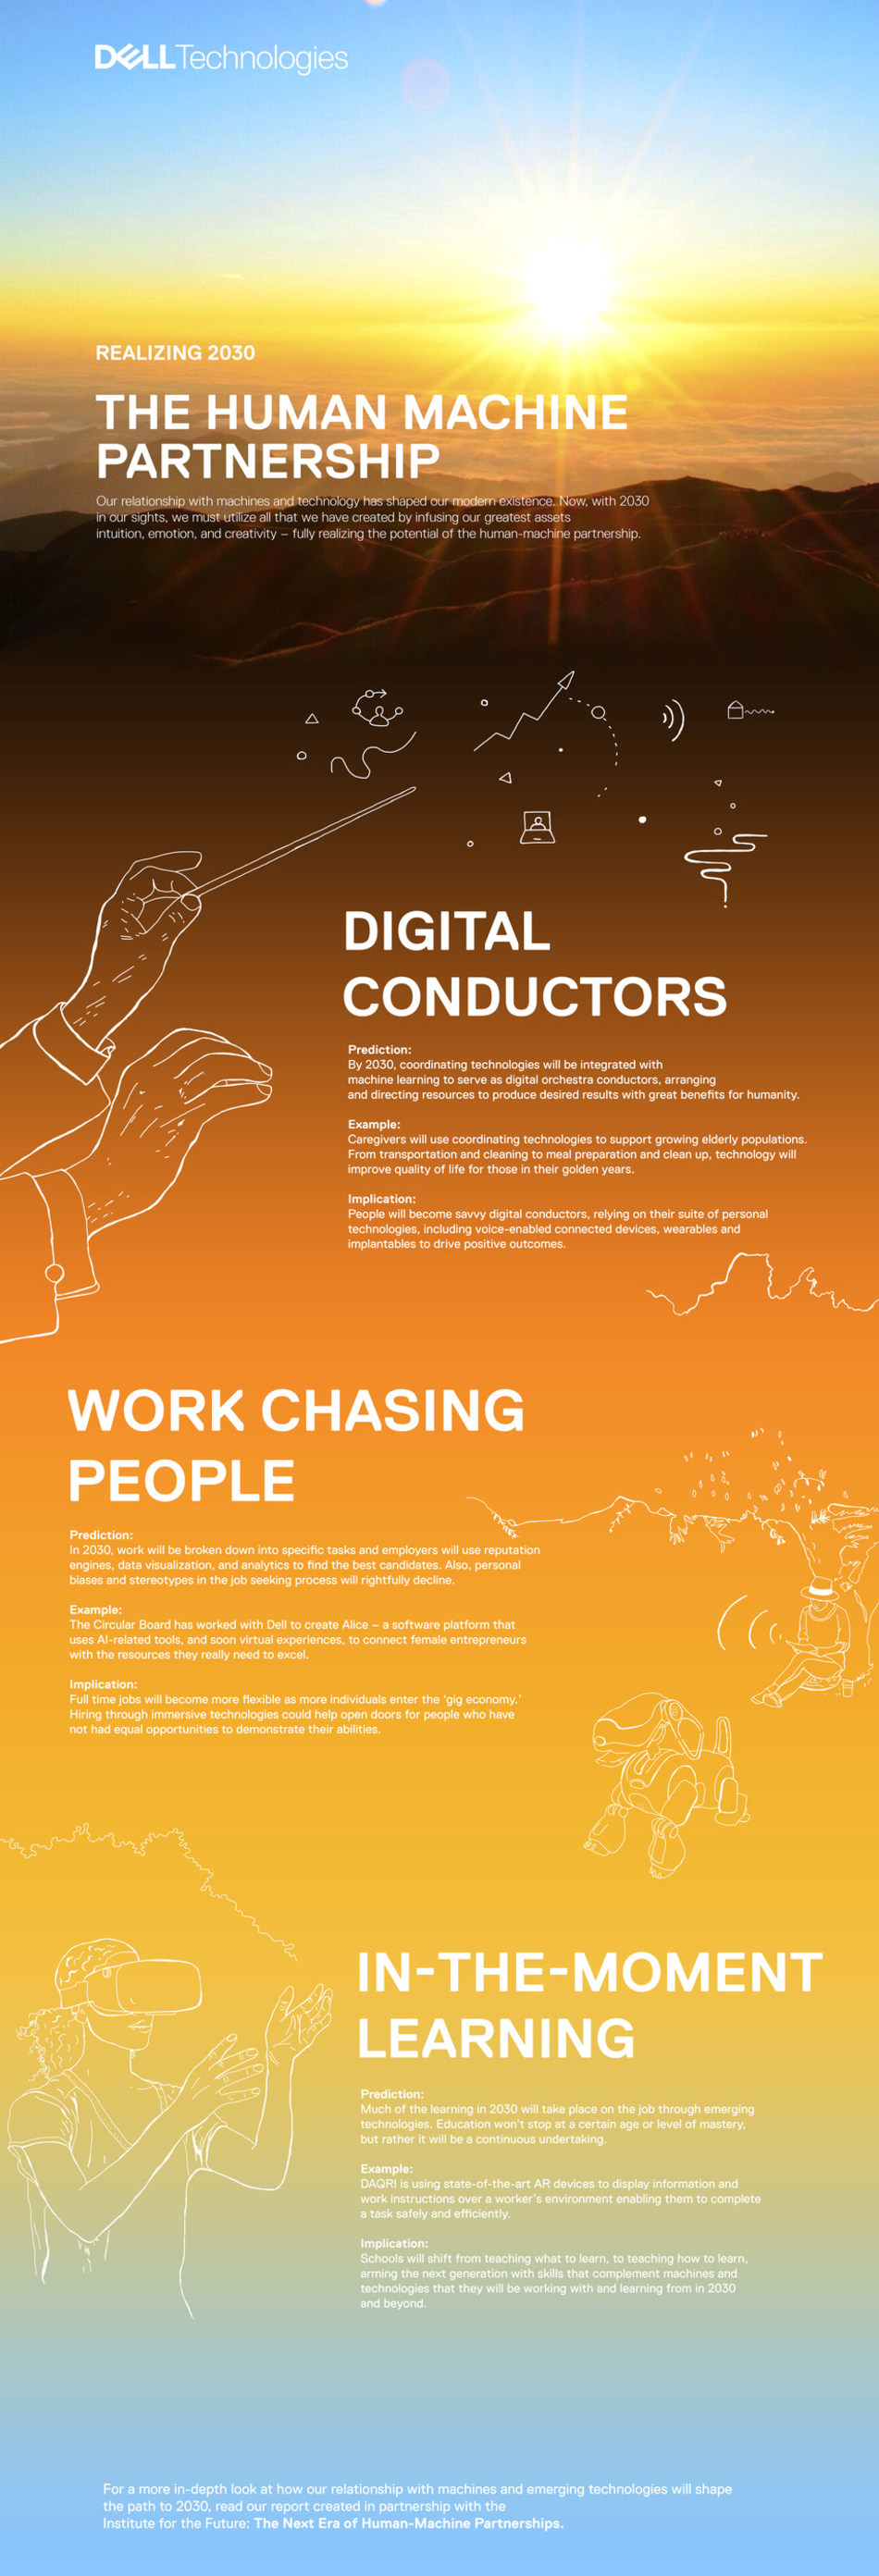 Dell 2030 infographic